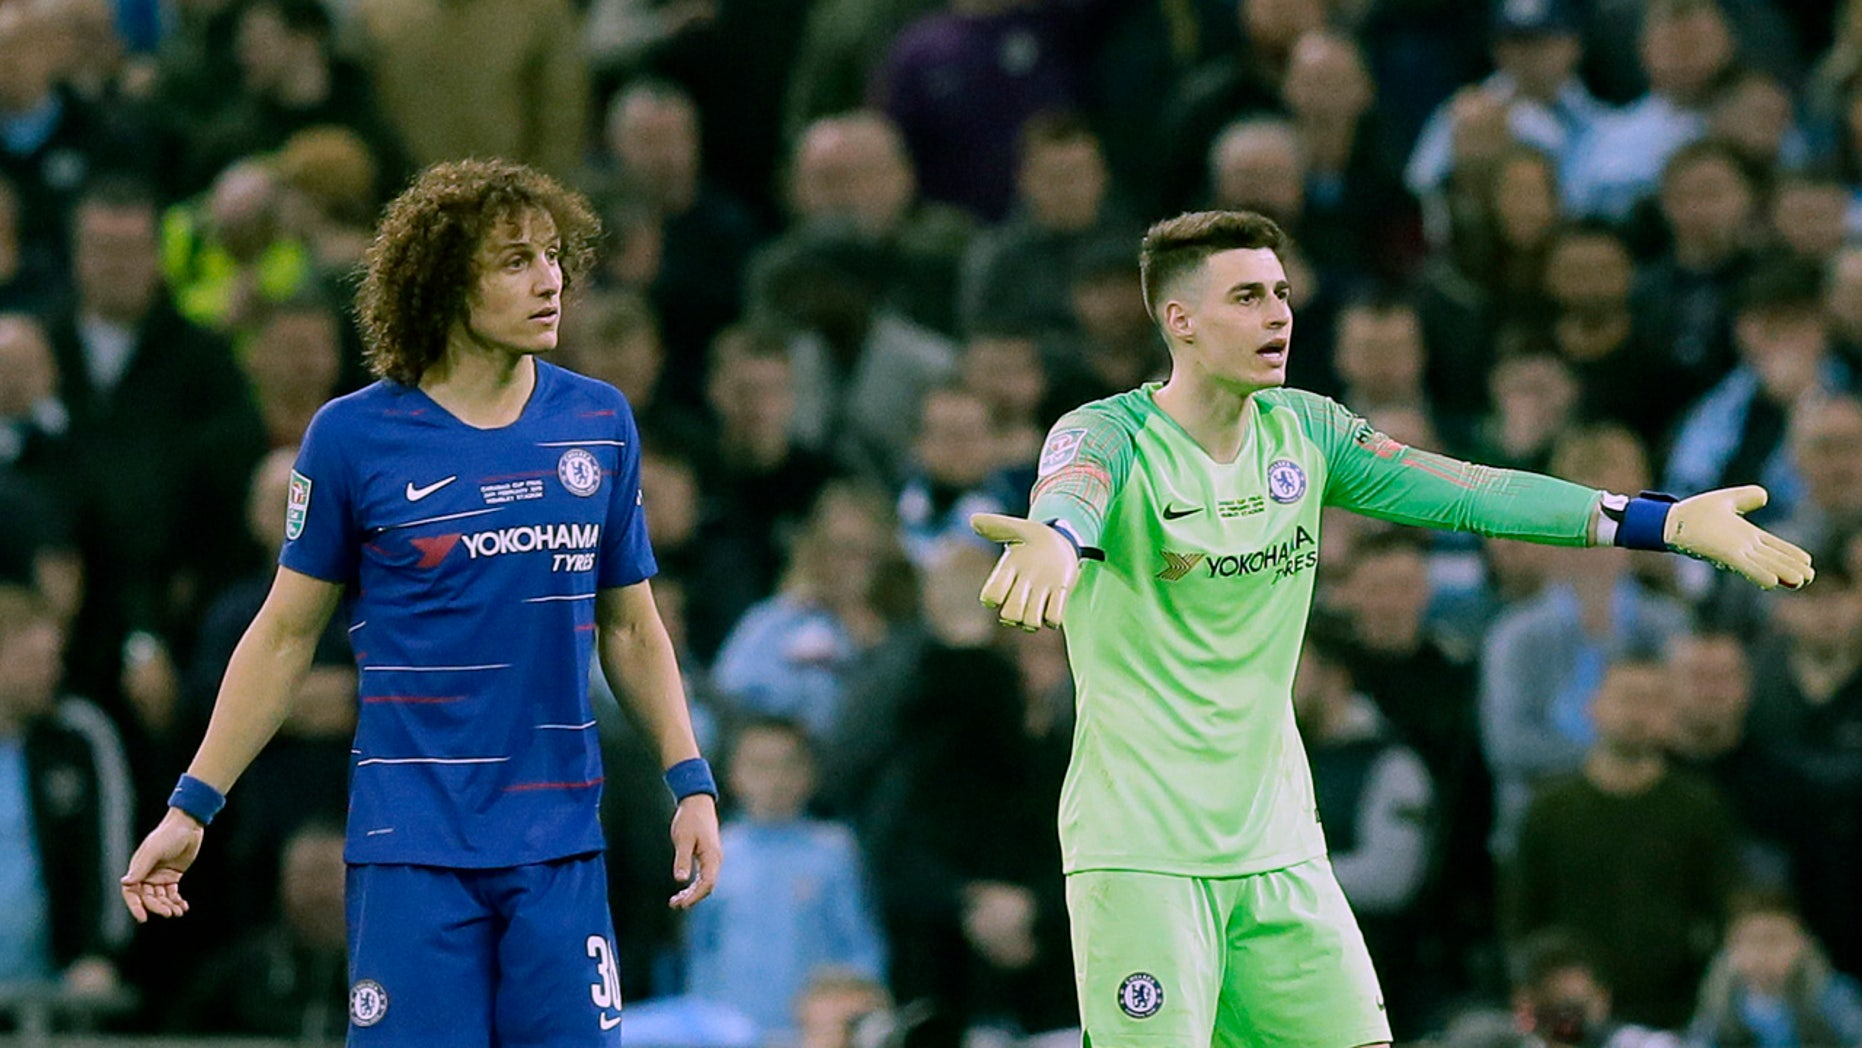 Chelsea goalkeeper Kepa Arrizabalaga, right, gesturing to the bench as captain David Luiz looked on during Sunday's League Cup final against Manchester City. (AP Photo/Tim Ireland